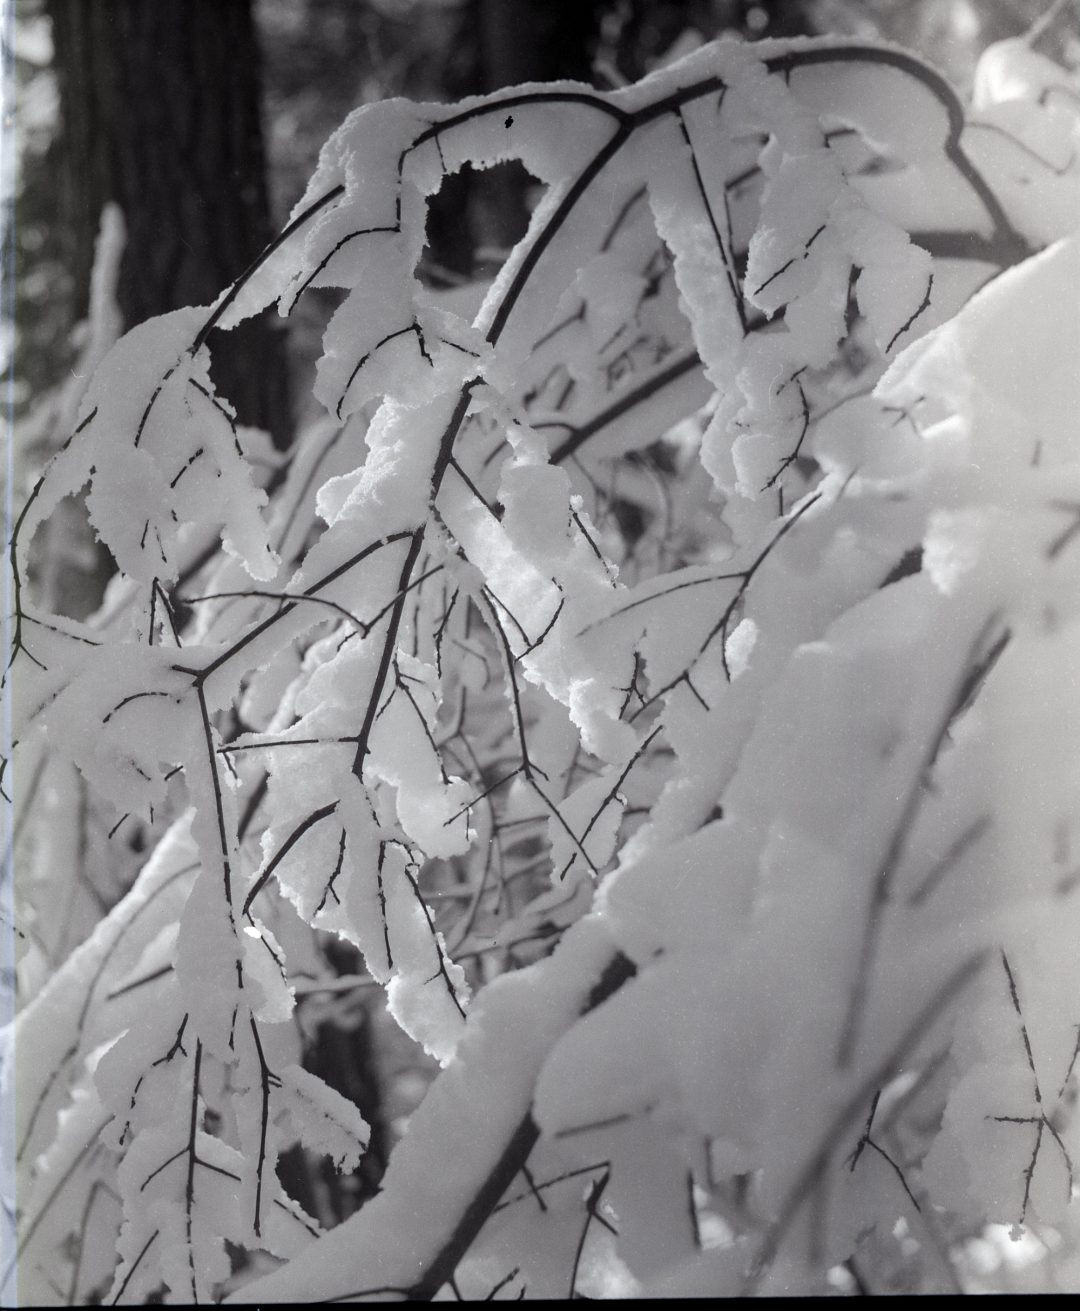 #006 Film per day – Snow Branches, Ramsau am Dachstein